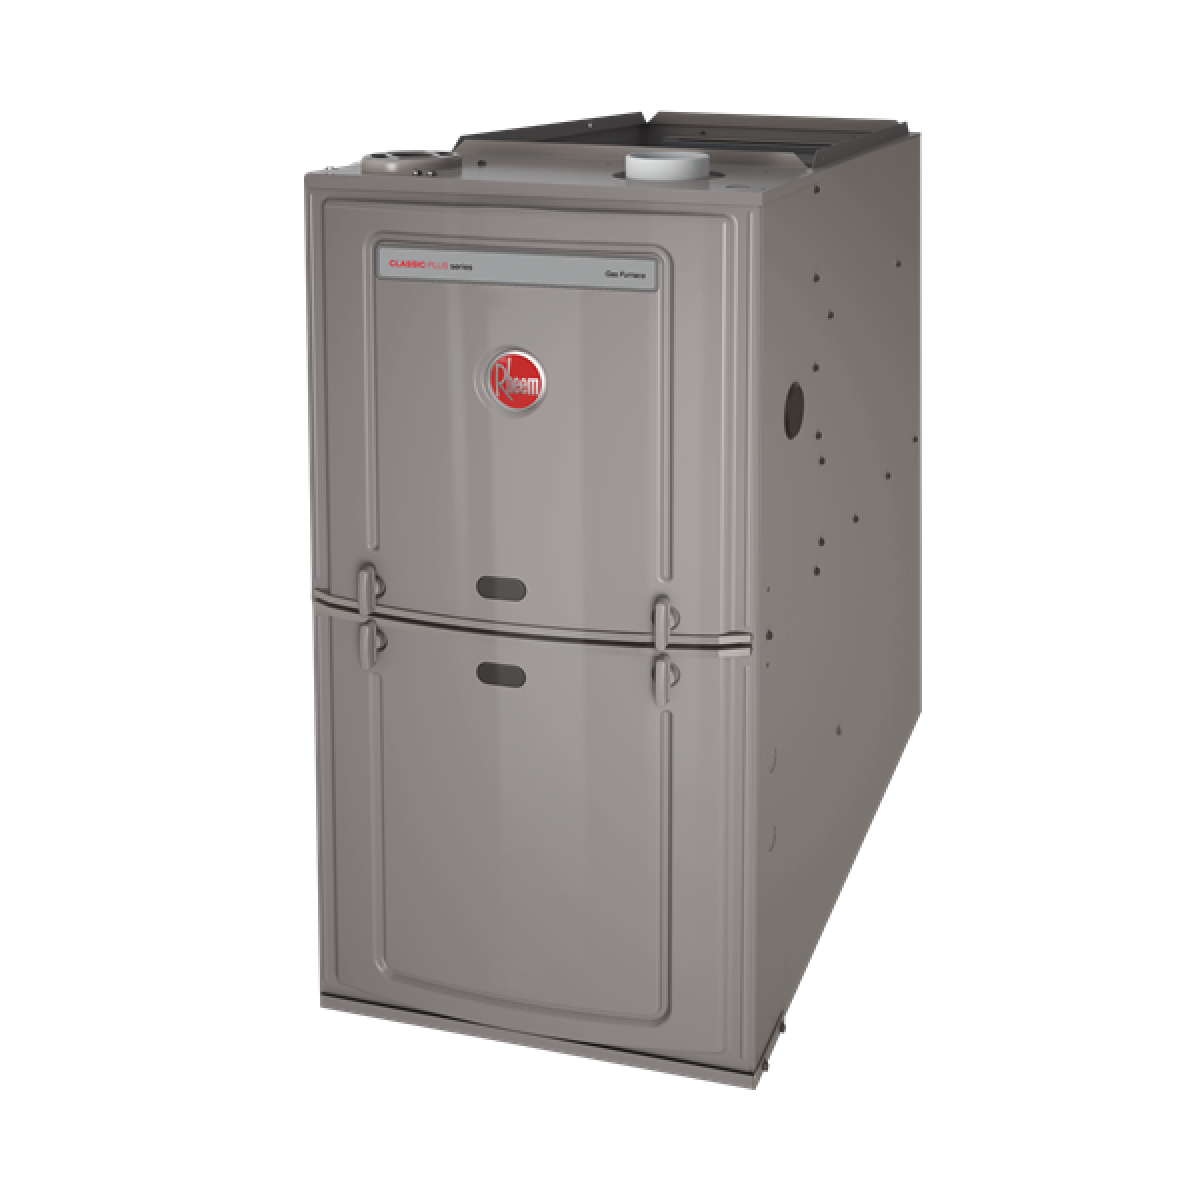 Rheem R801S 50K BTU 80% Single Stage Upflow/Horizontal Natural Gas Furnace